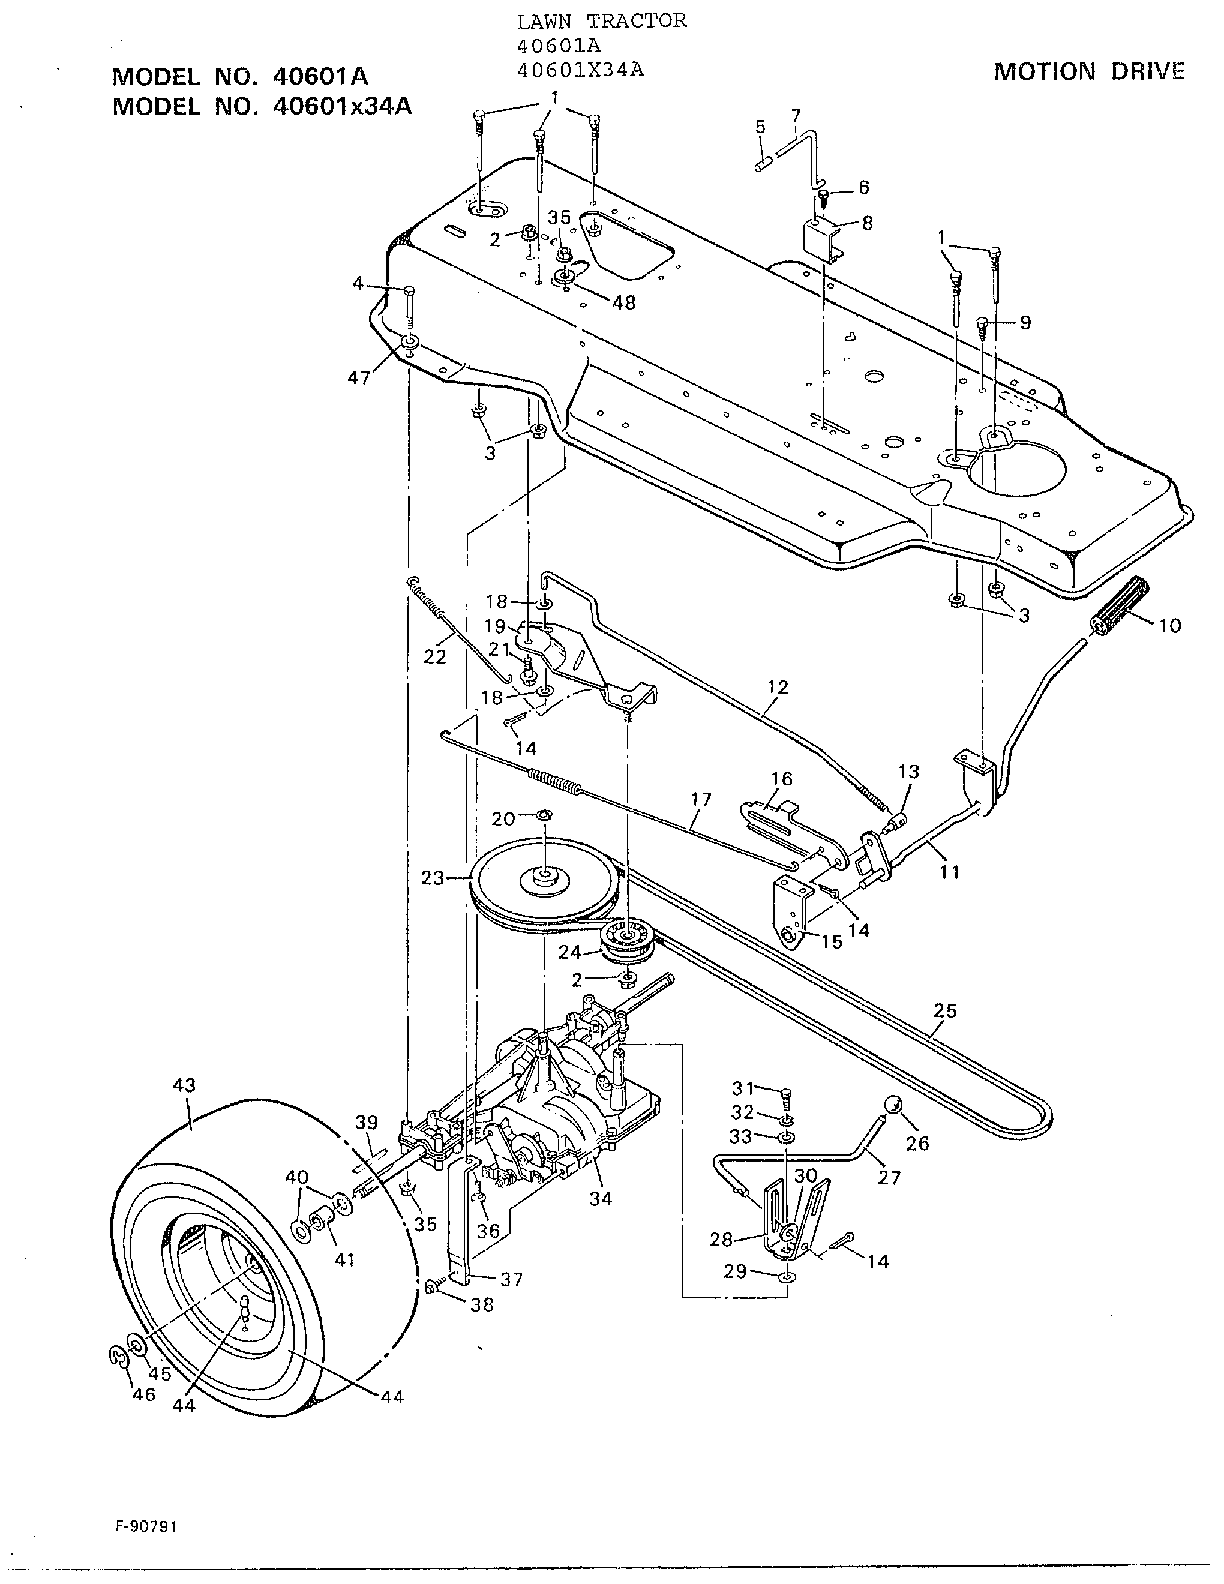 hight resolution of murray 40601a motion drive diagram